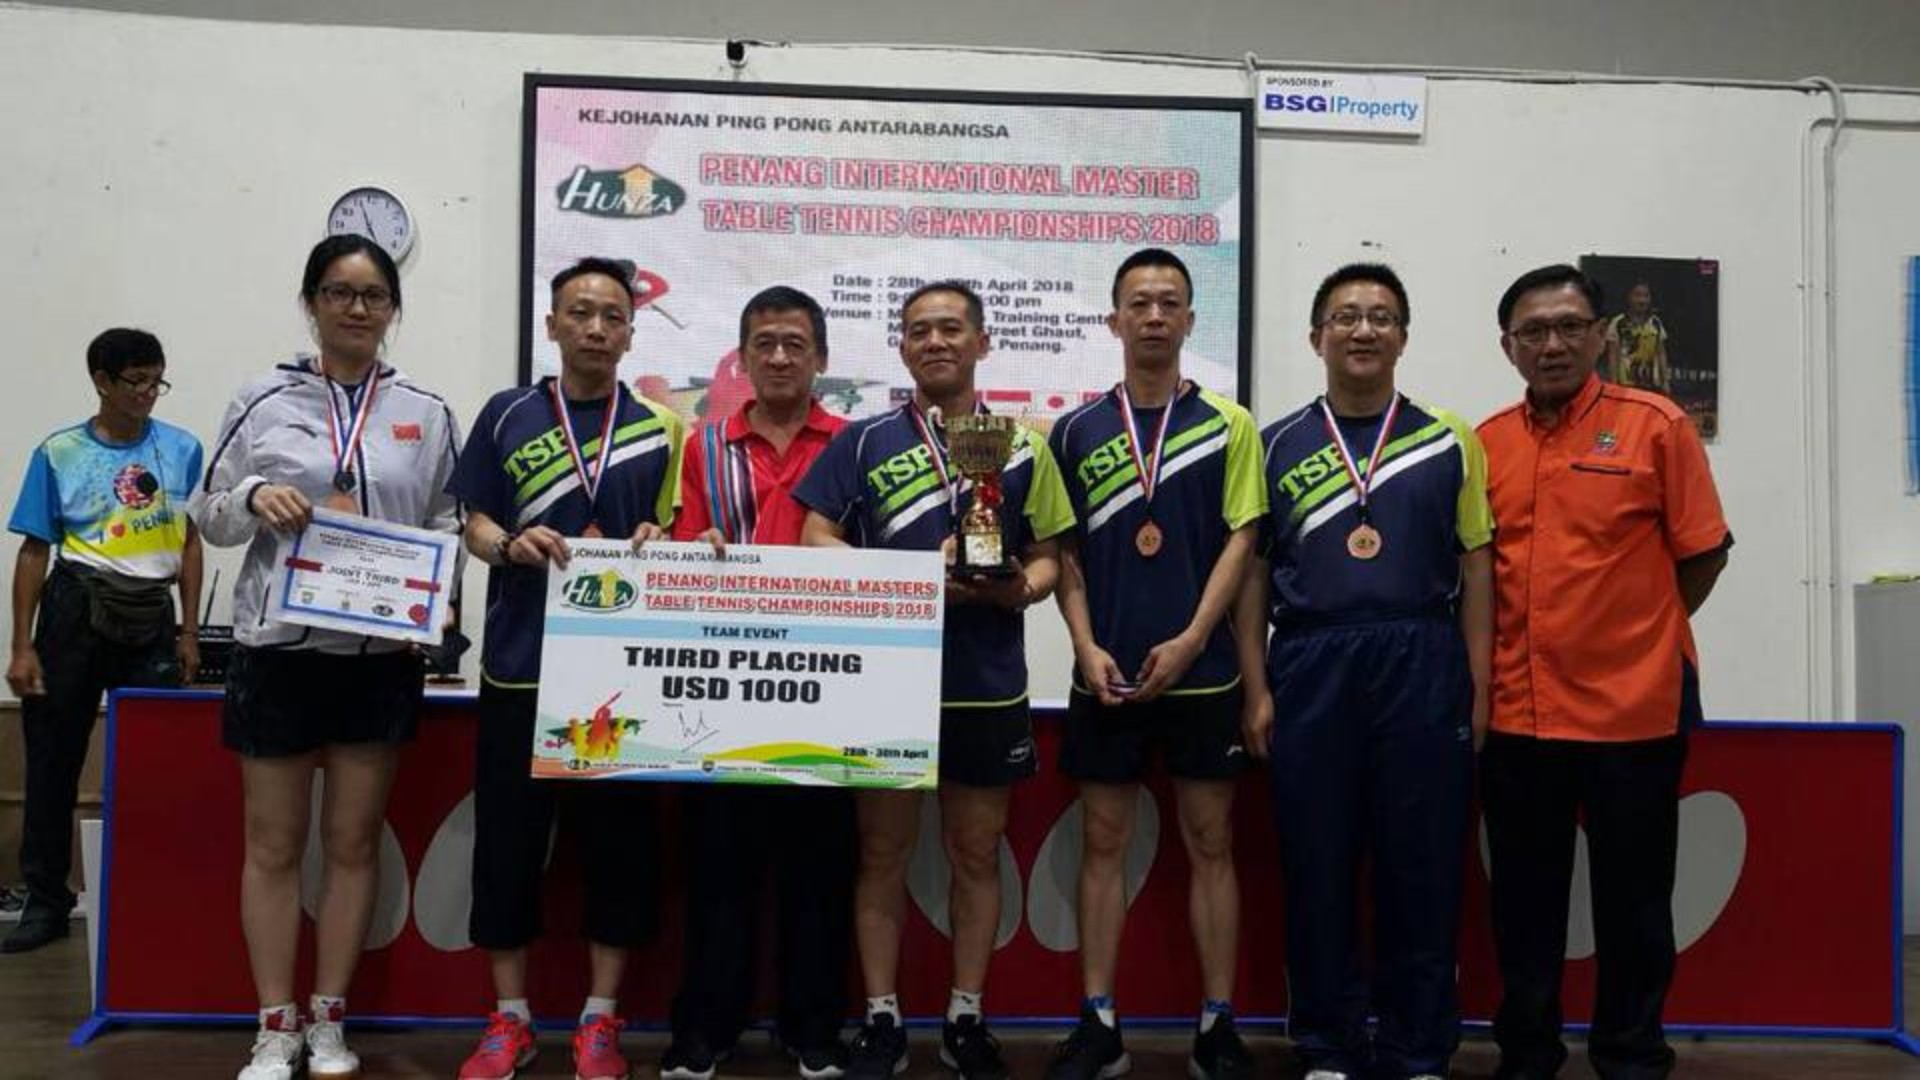 Third Placing - Team Event